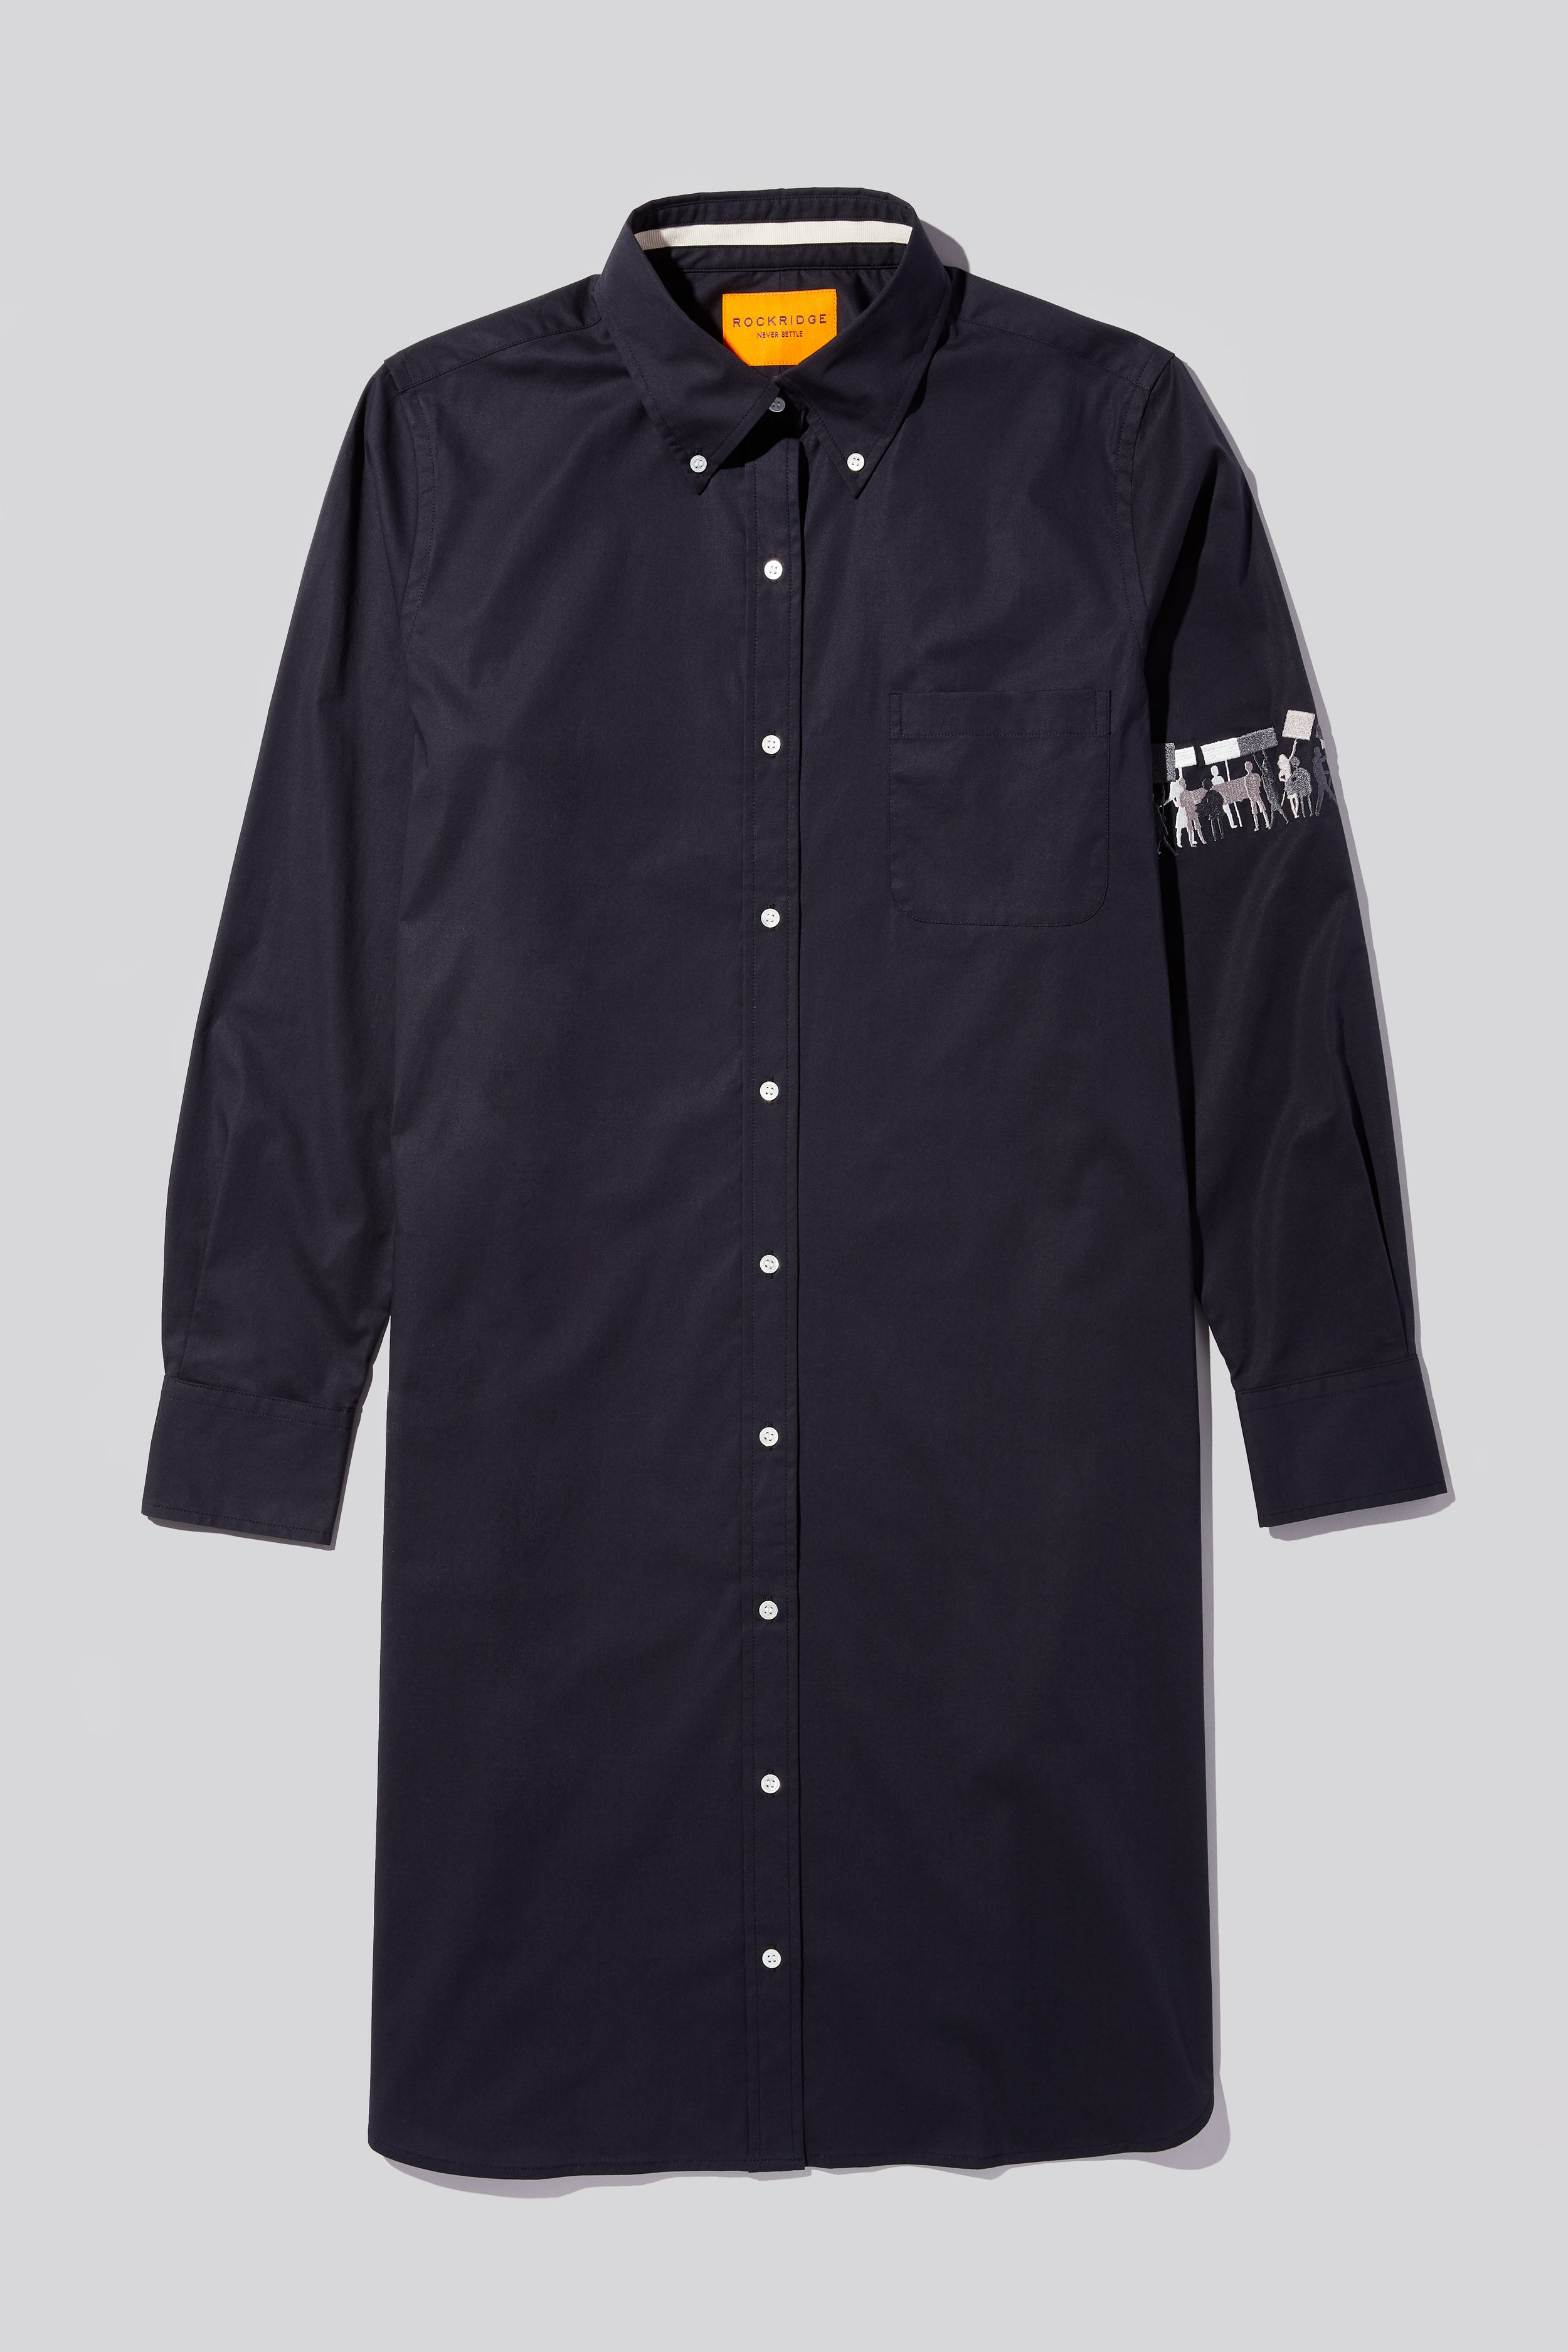 1619 AND BEYOND - WOMENS BUTTON DOWN SHIRT